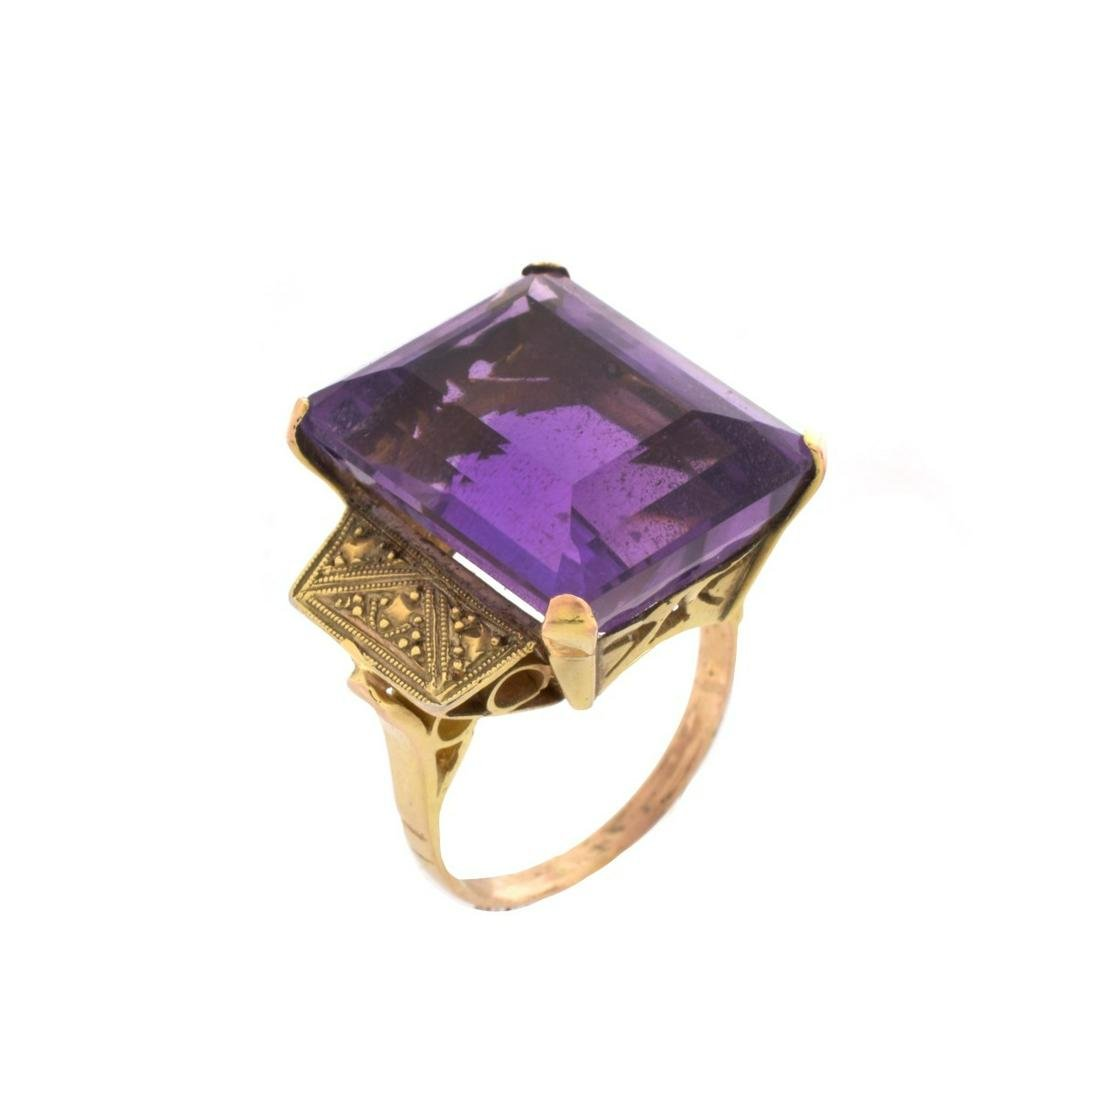 Vintage Amethyst and 14K Ring